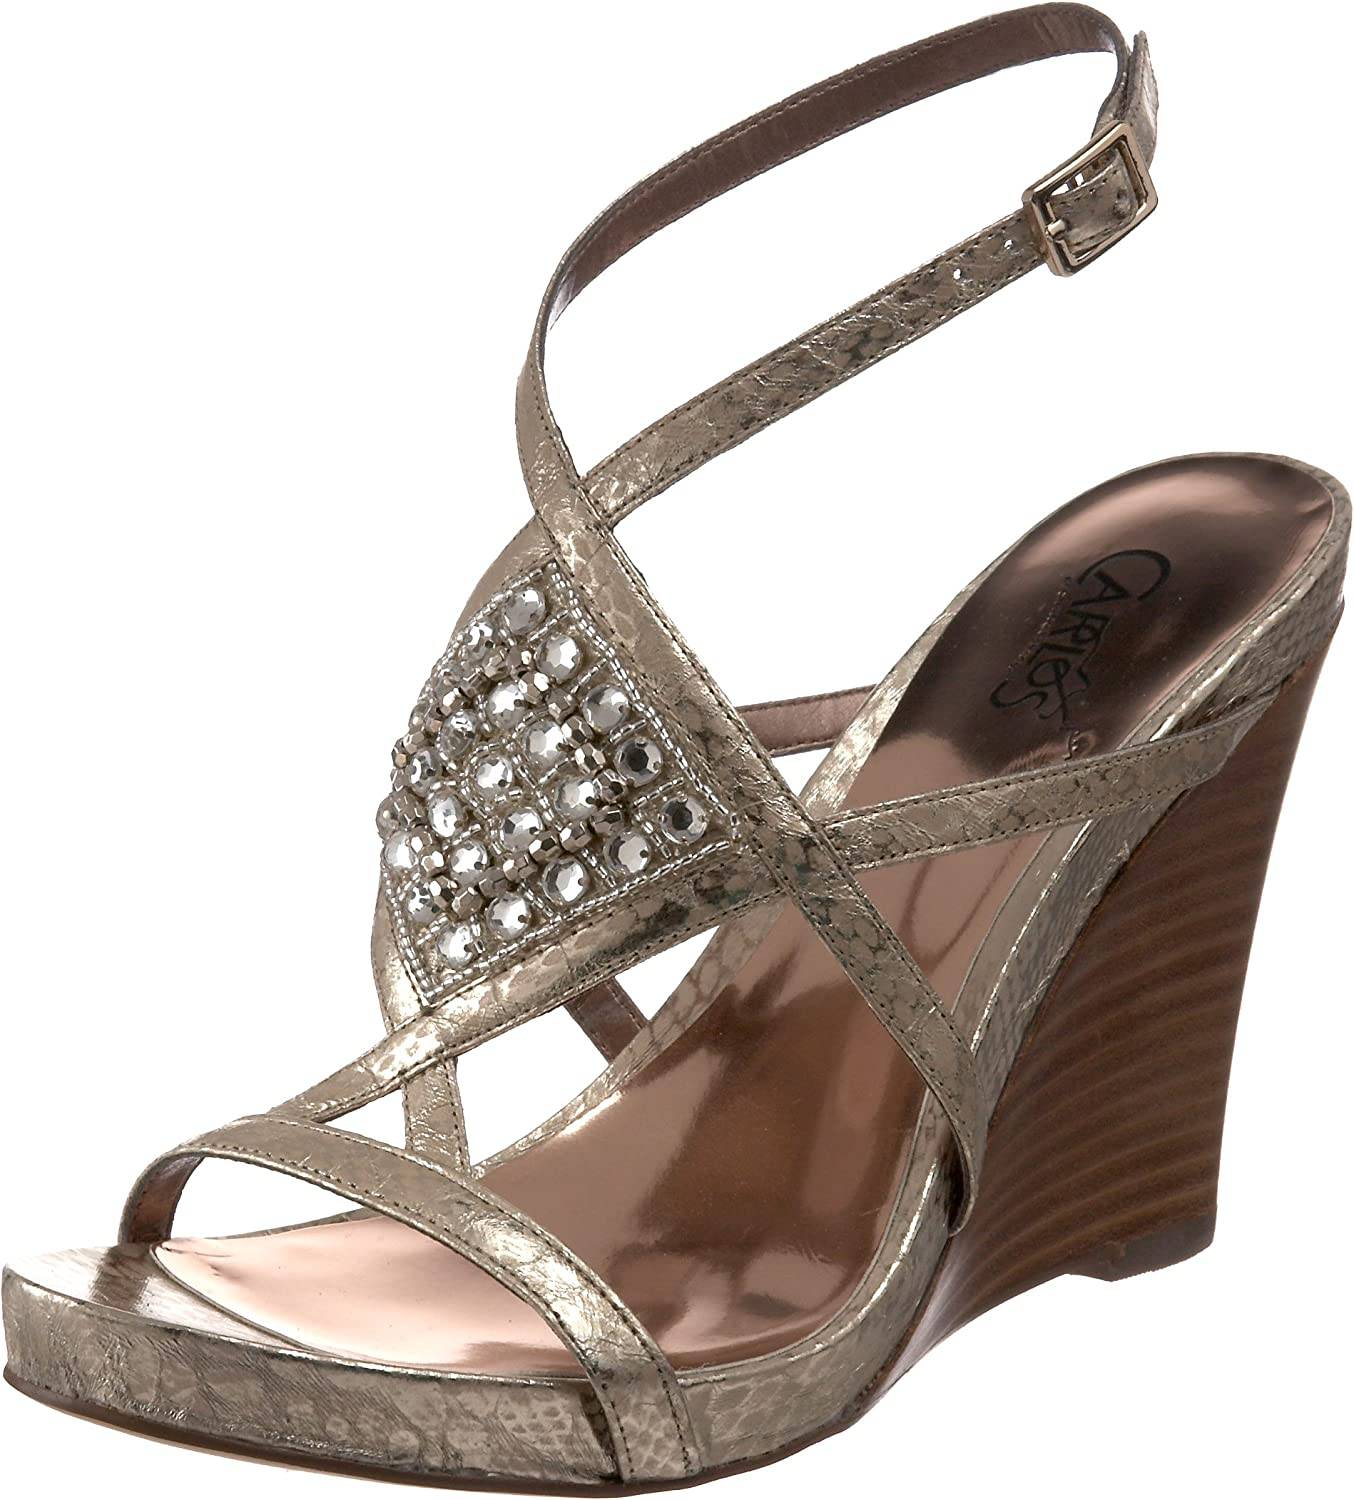 Carlos by Carlos Santana Women's Allure